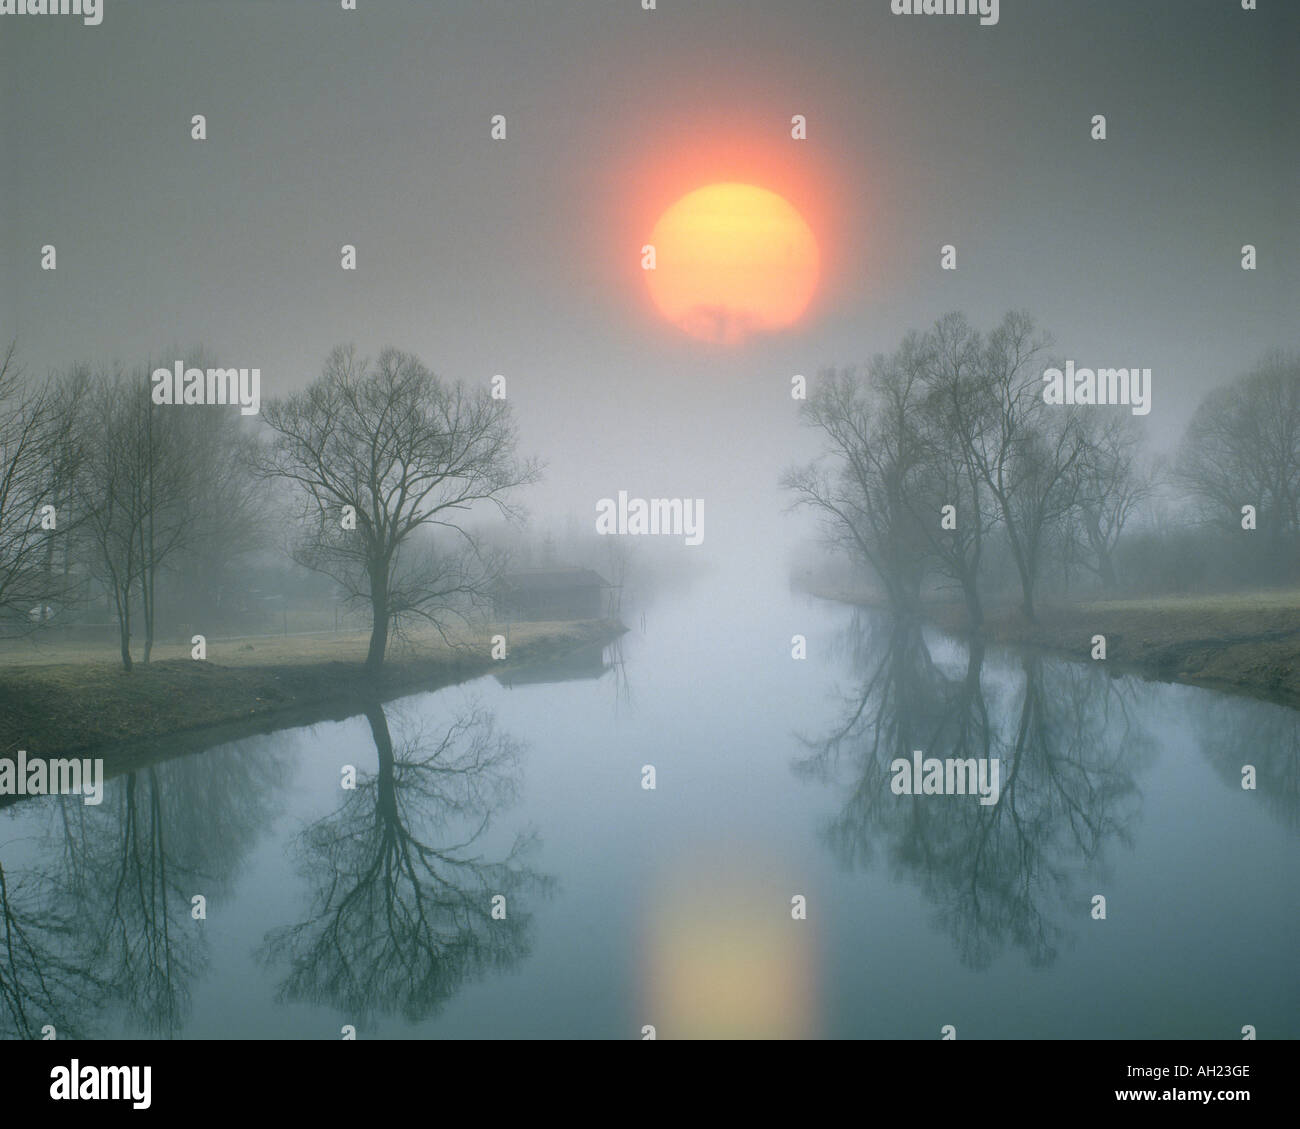 DE - BAVARIA: Sunset over River Loisach entering Lake Kochel - Stock Image